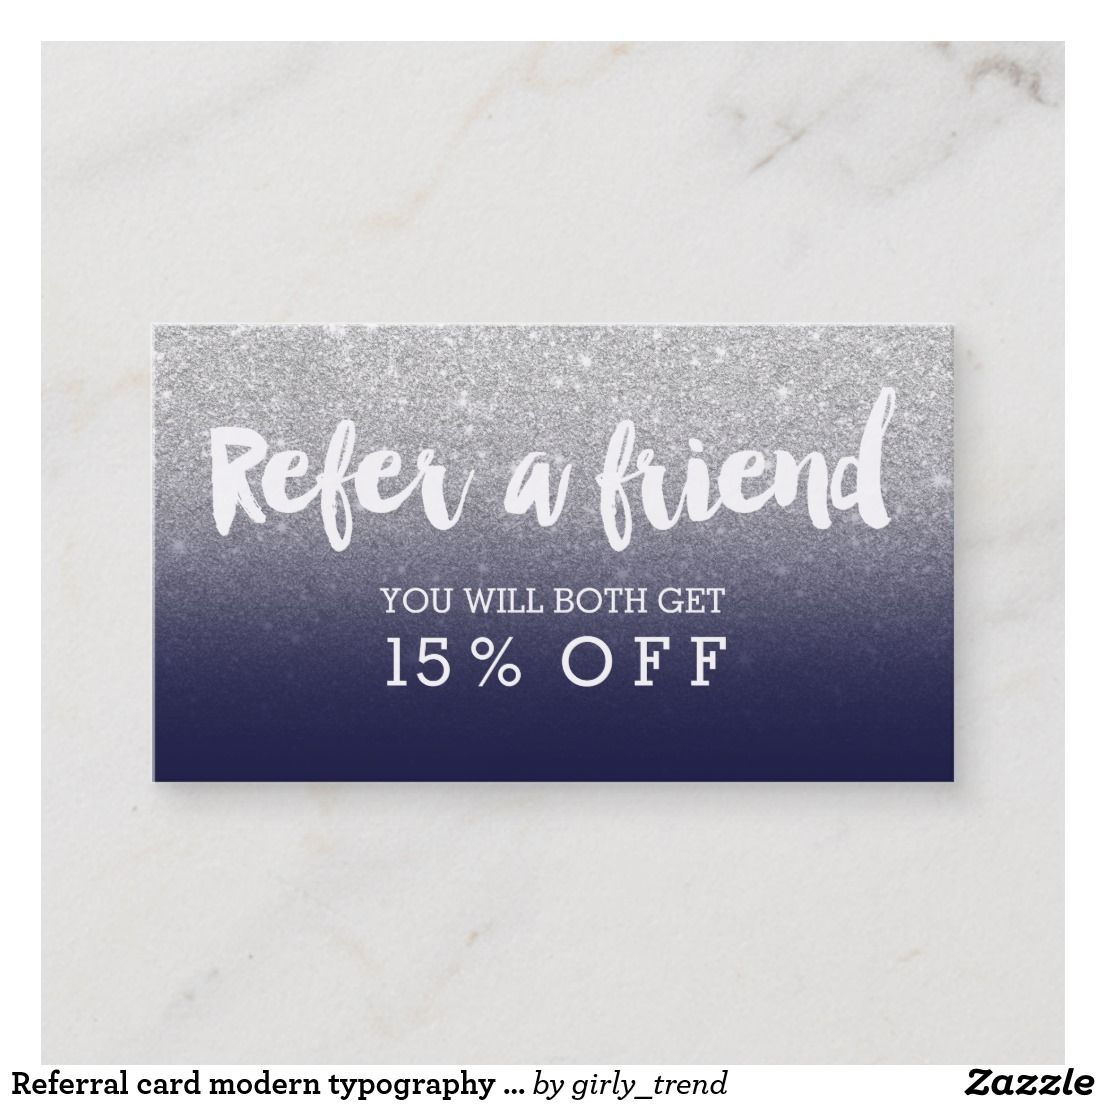 Referral card modern typography navy blue silver in business